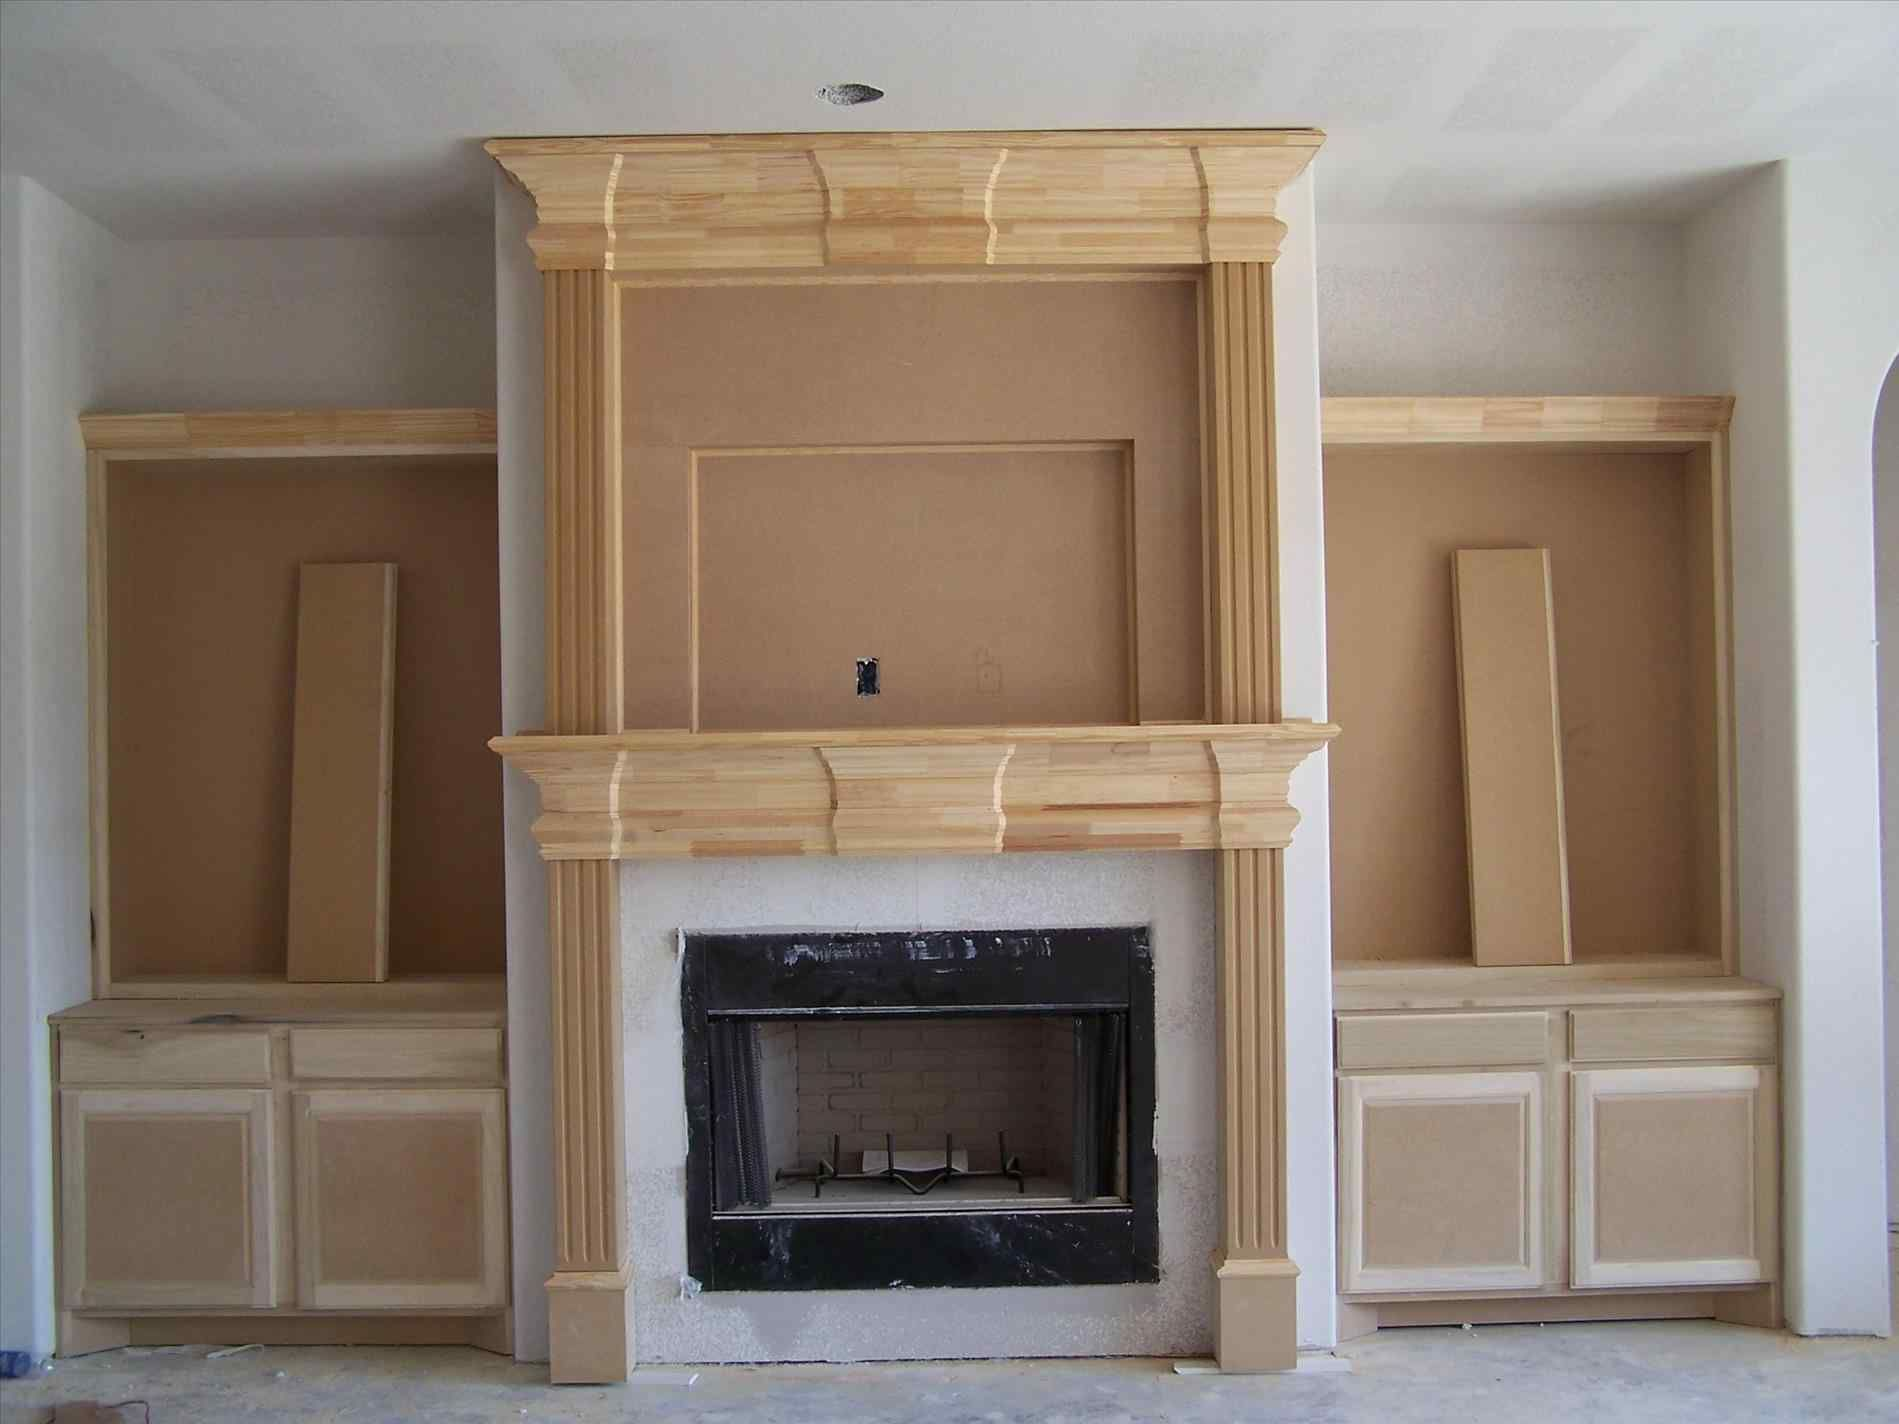 Appealing Fireplace Surround Kits For Cozy Home Decoration All About Fireplaces And Surrounds Build A Fireplace Fireplace Bookshelves Fireplace Mantel Designs